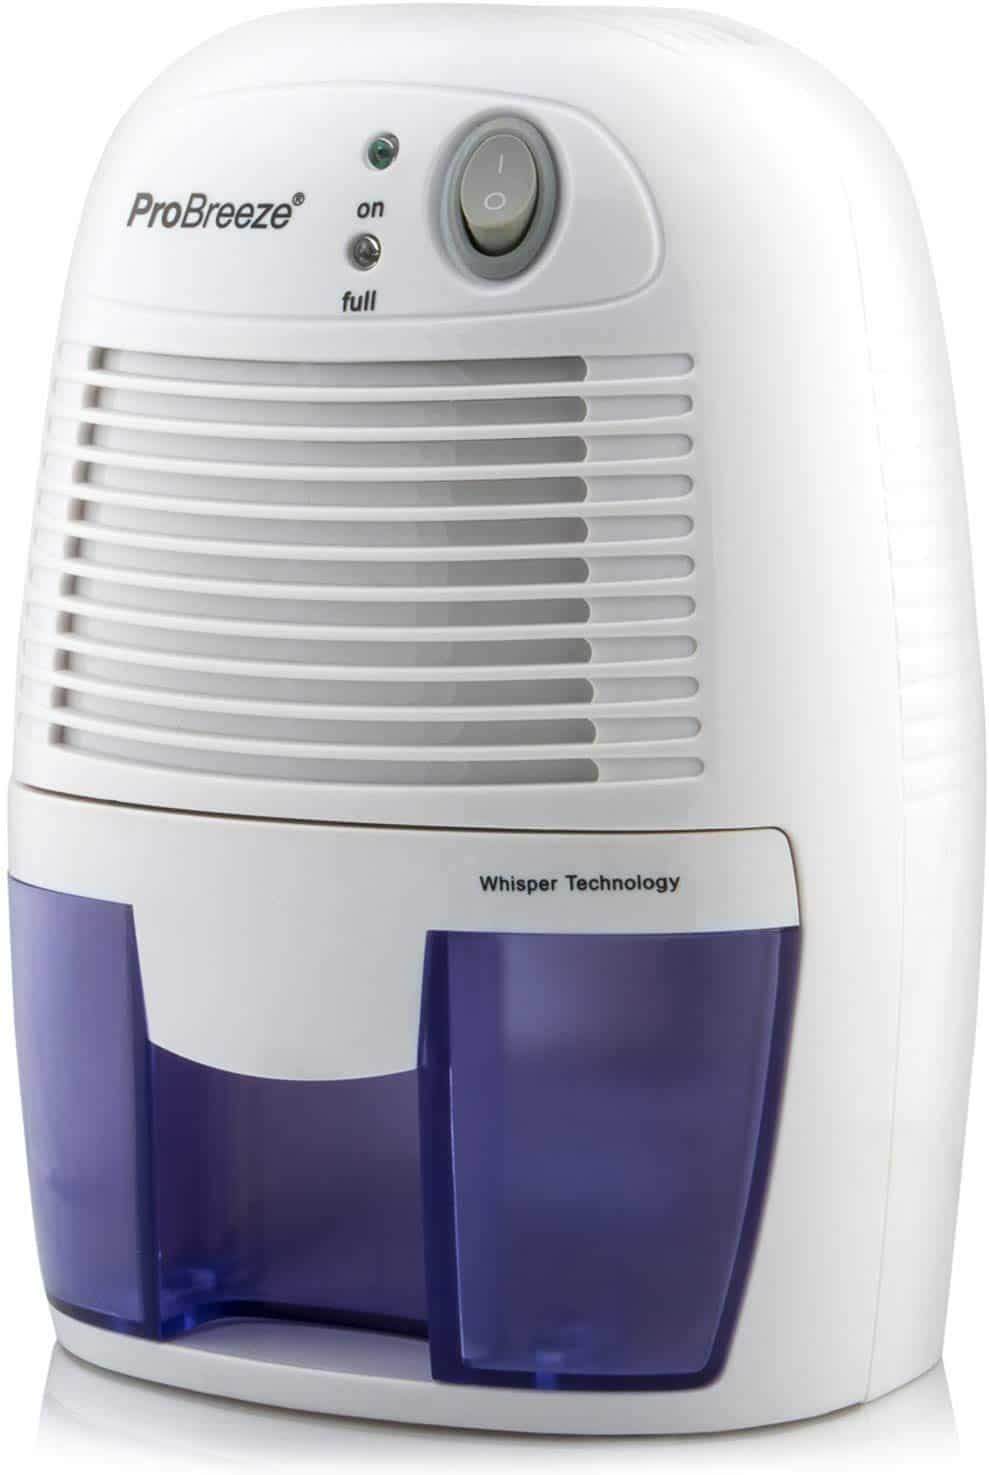 5 Best Dehumidifiers For Bedroom Oct 2020 Reviews Buying Guide